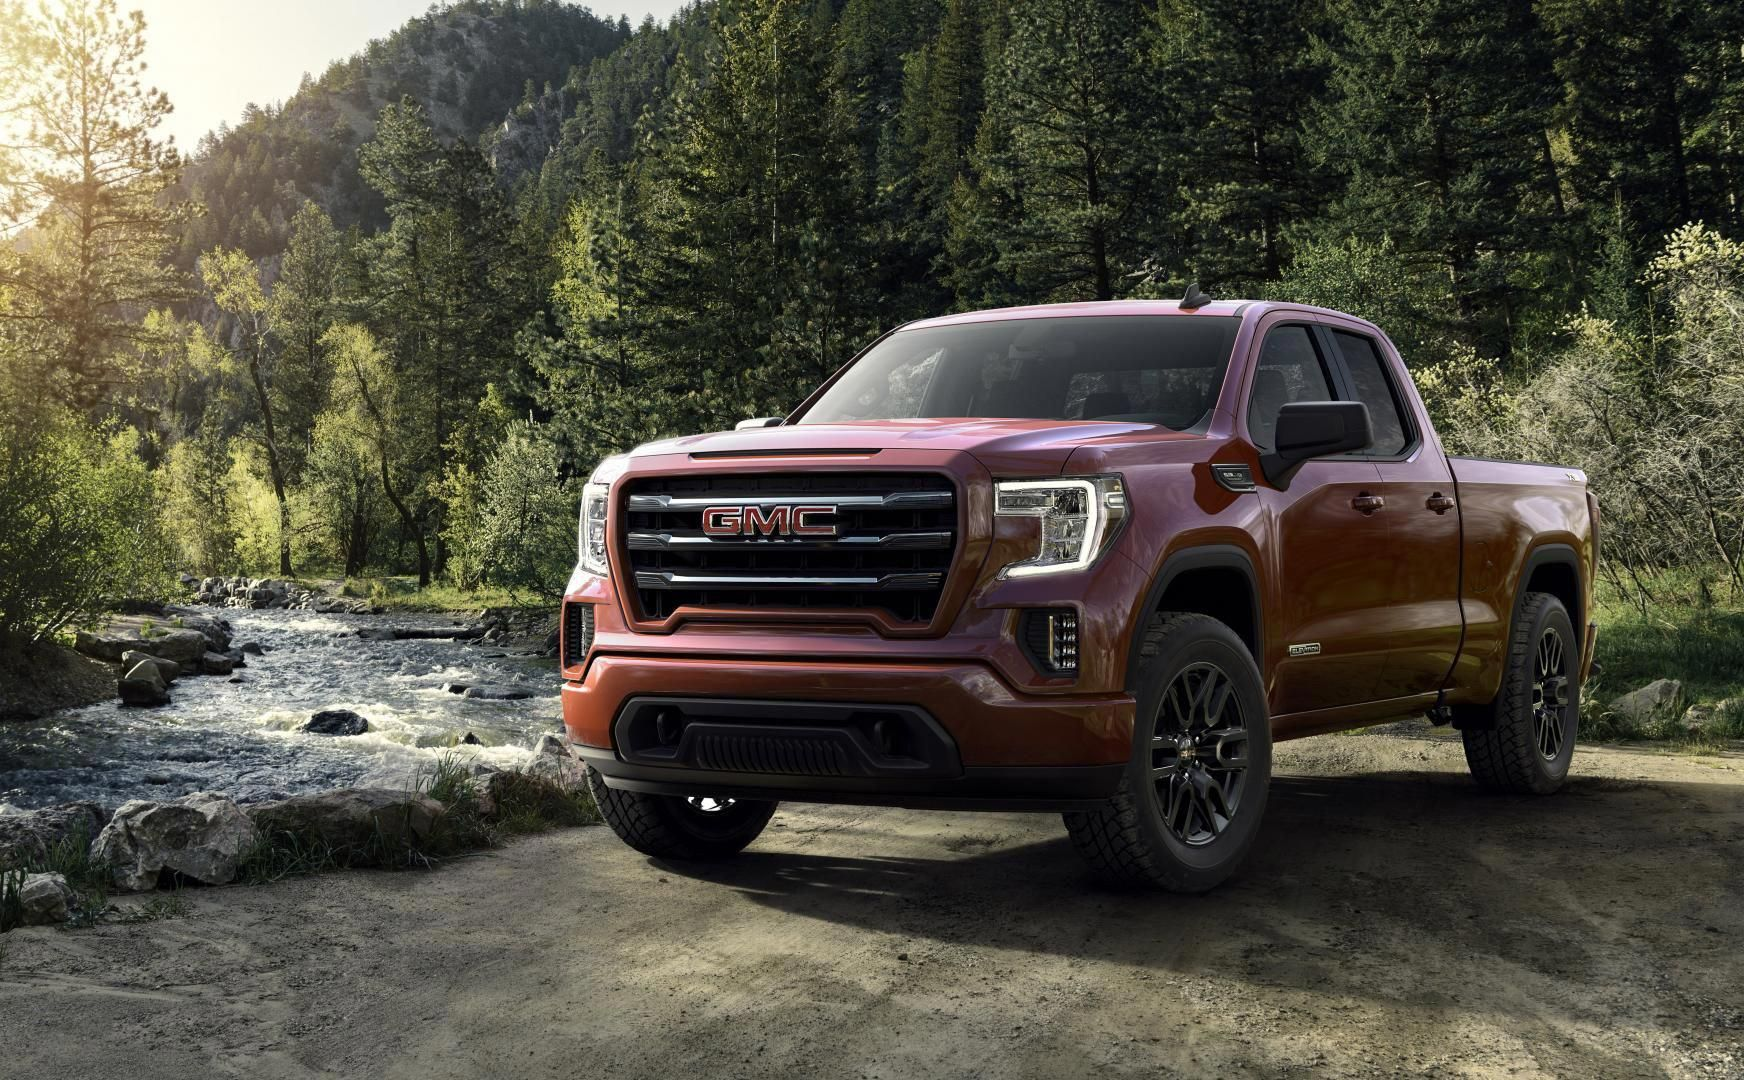 Pin By David Agams On Cars And Motorcycles In 2020 Gmc Sierra 1500 Gmc Sierra Gmc Trucks